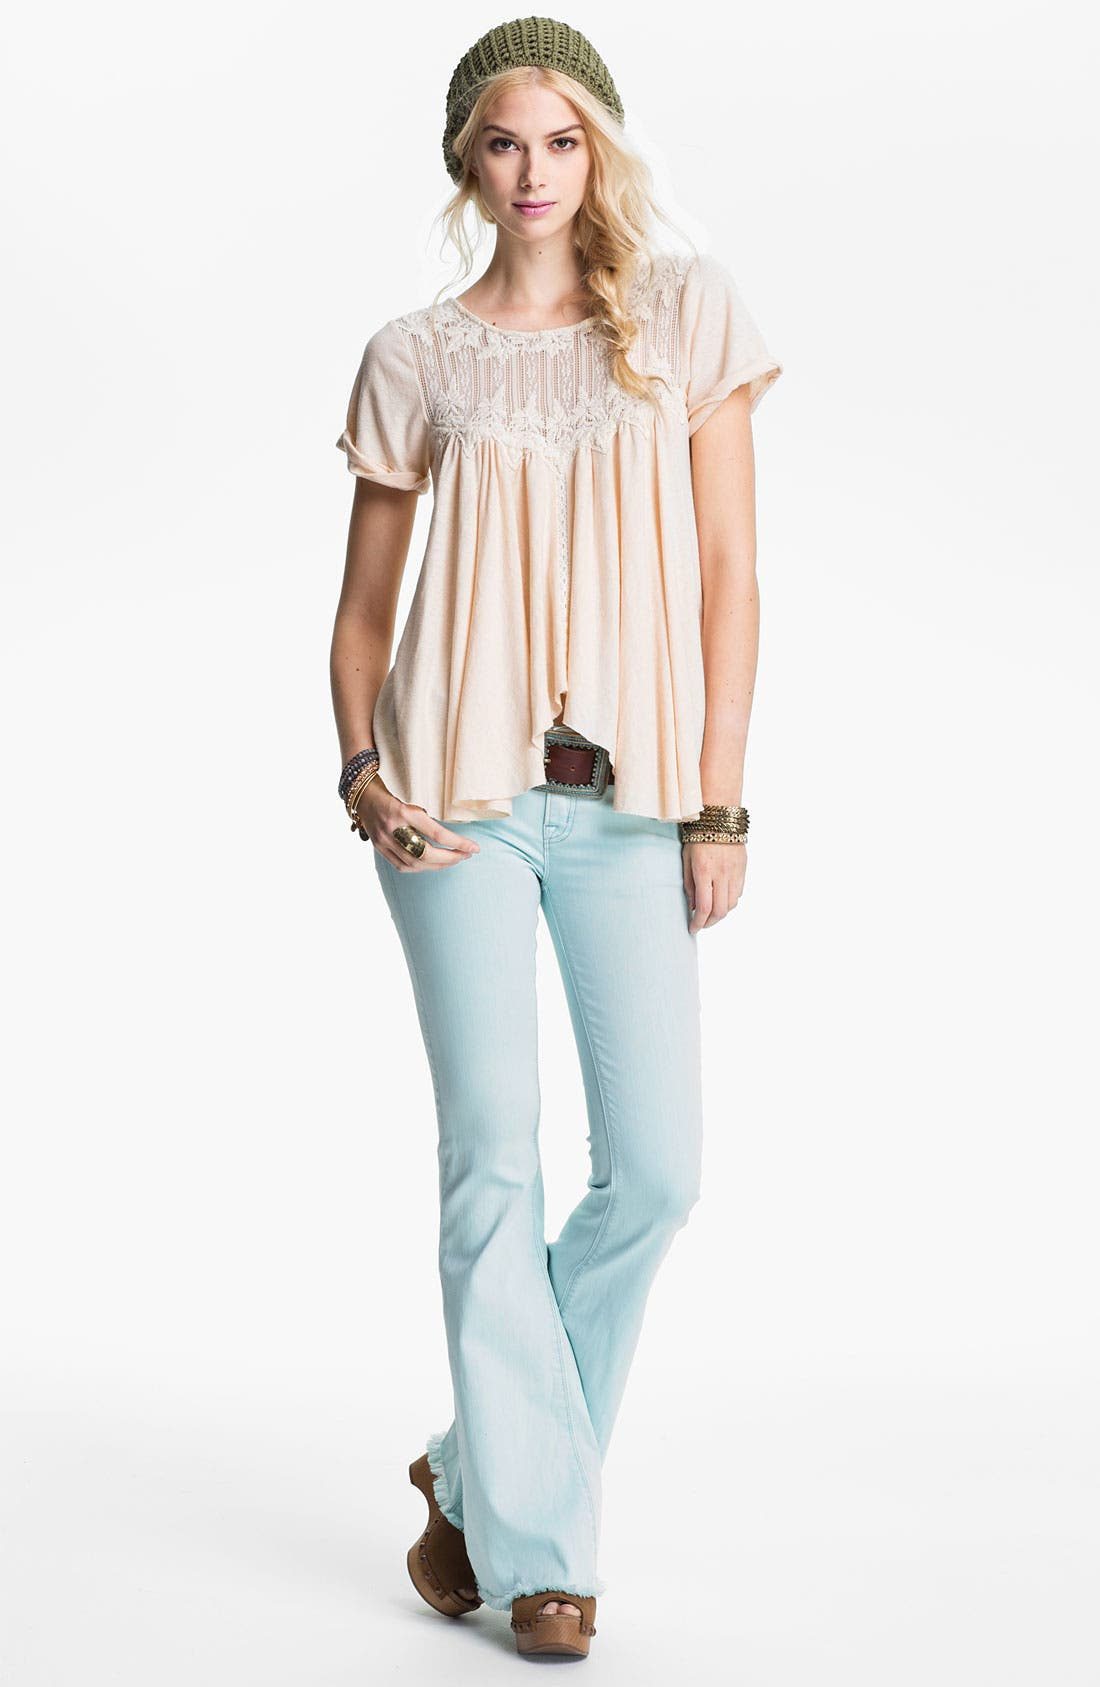 Main Image - Free People Top & Jeans